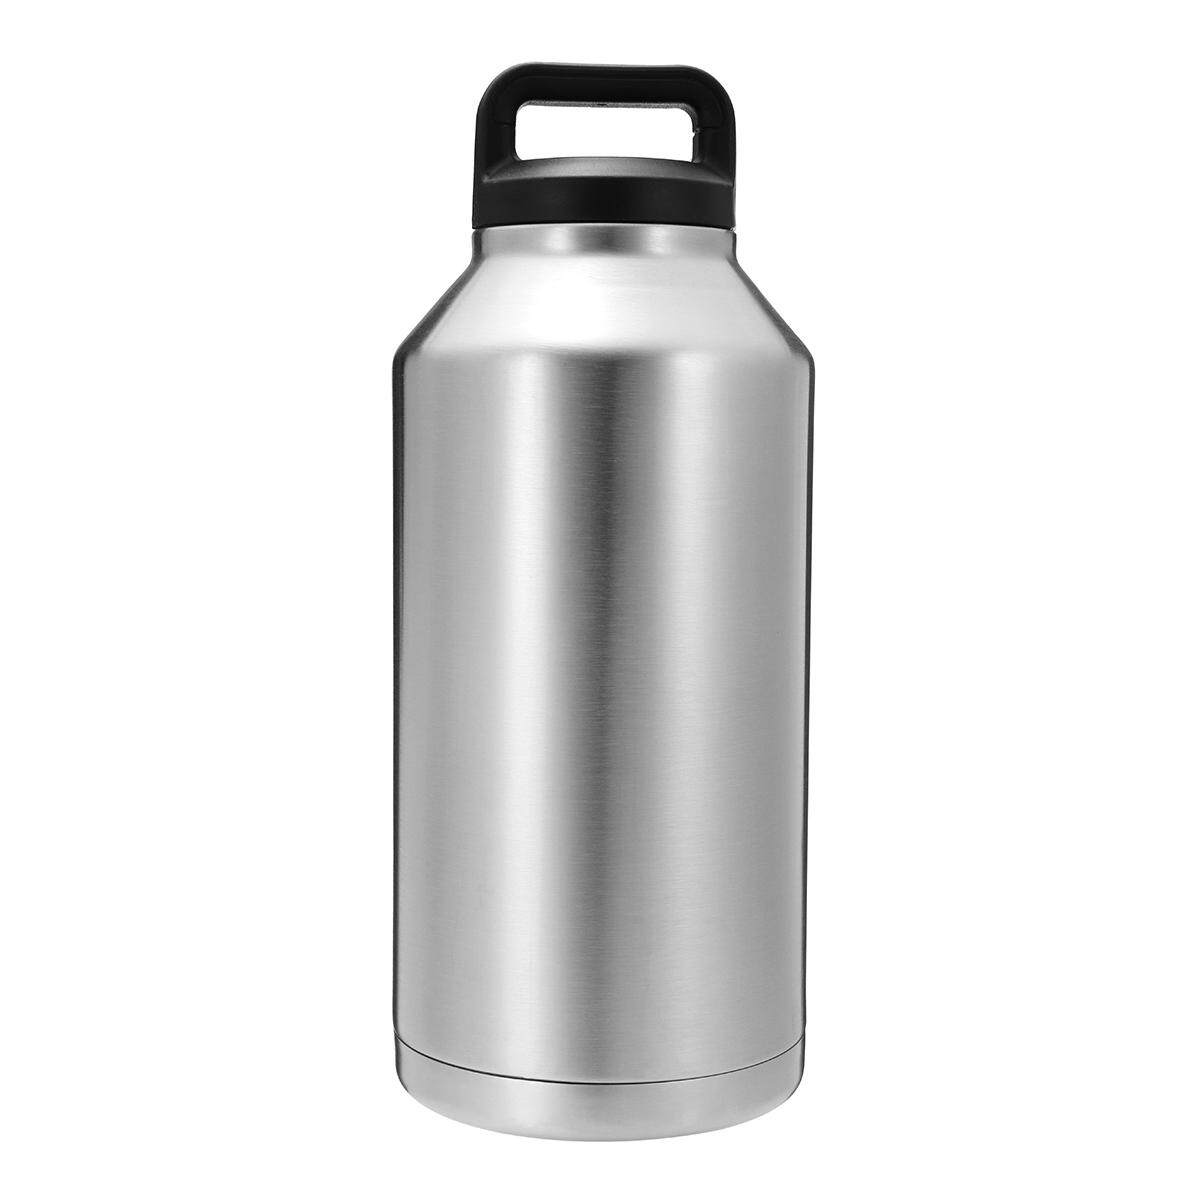 64oz Stainless Steel Vacuum Insulated Water Bottle Travel Thermos Cup #64oz